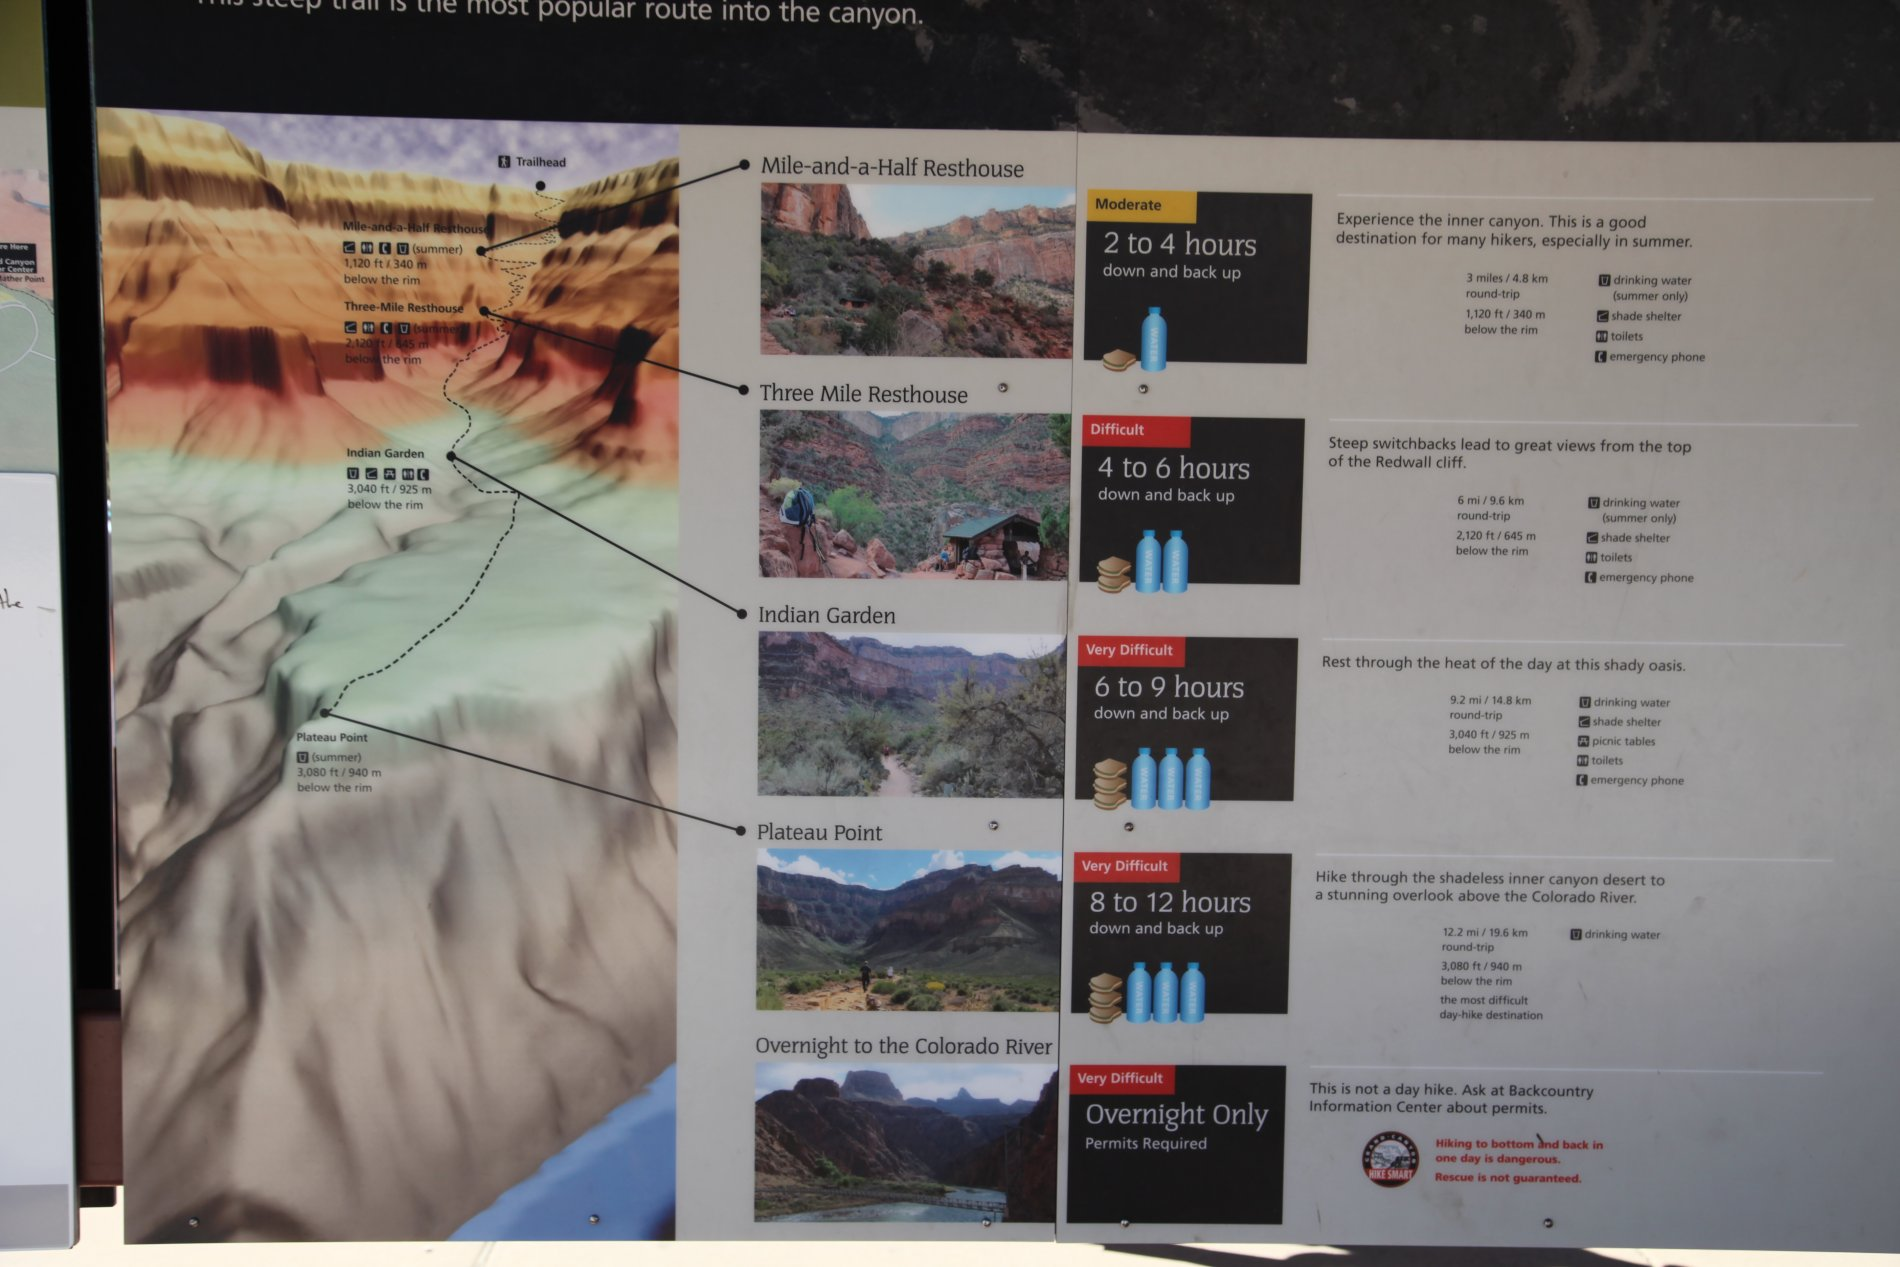 IMG_0992.JPG: Bright Angel Trail info ...